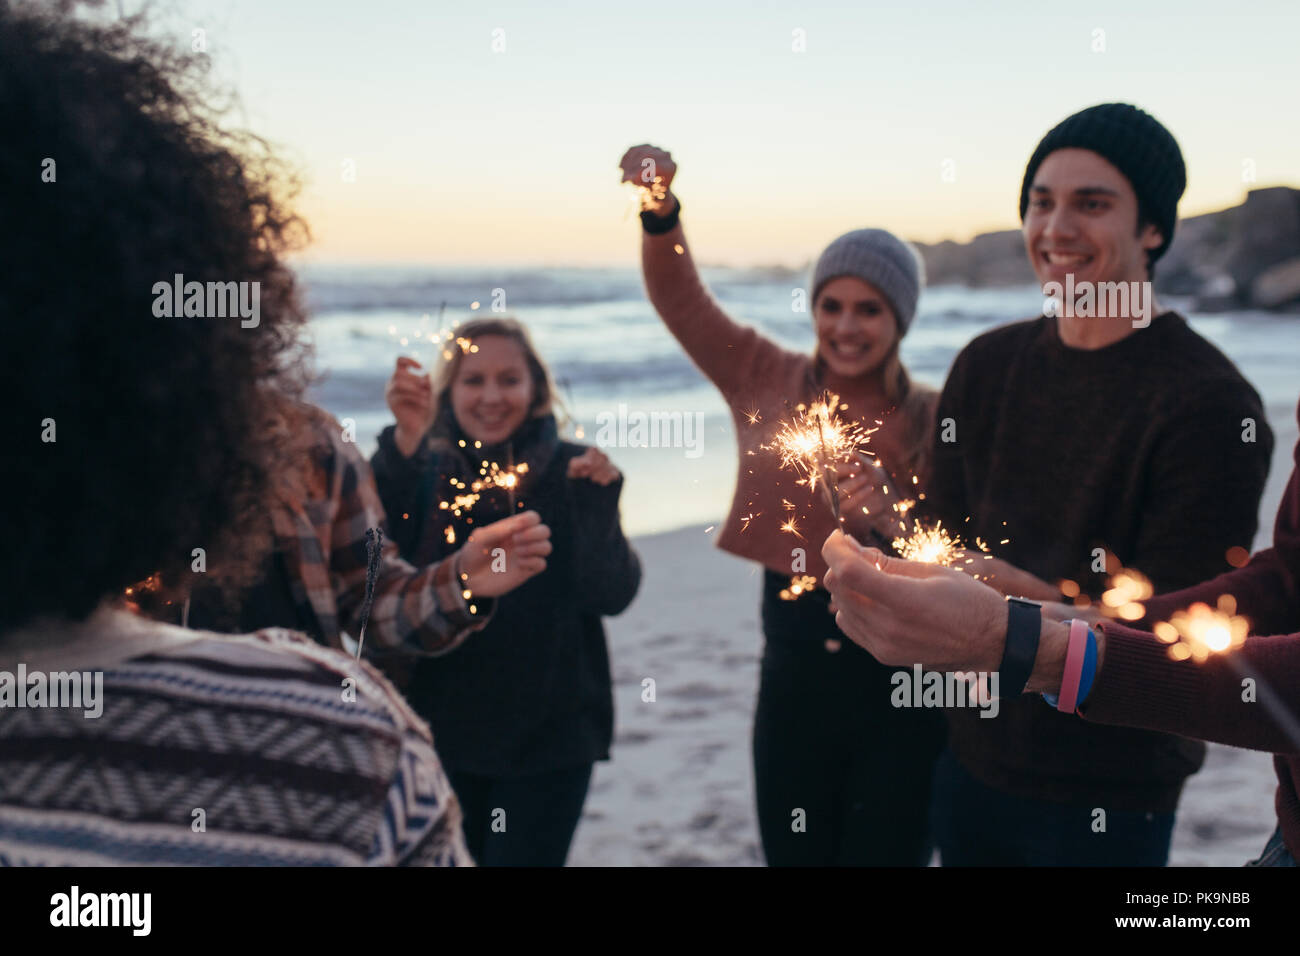 Diverse group of young people celebrating new year's day at the beach. Young people having fun with sparklers outdoors at the sea shore. - Stock Image